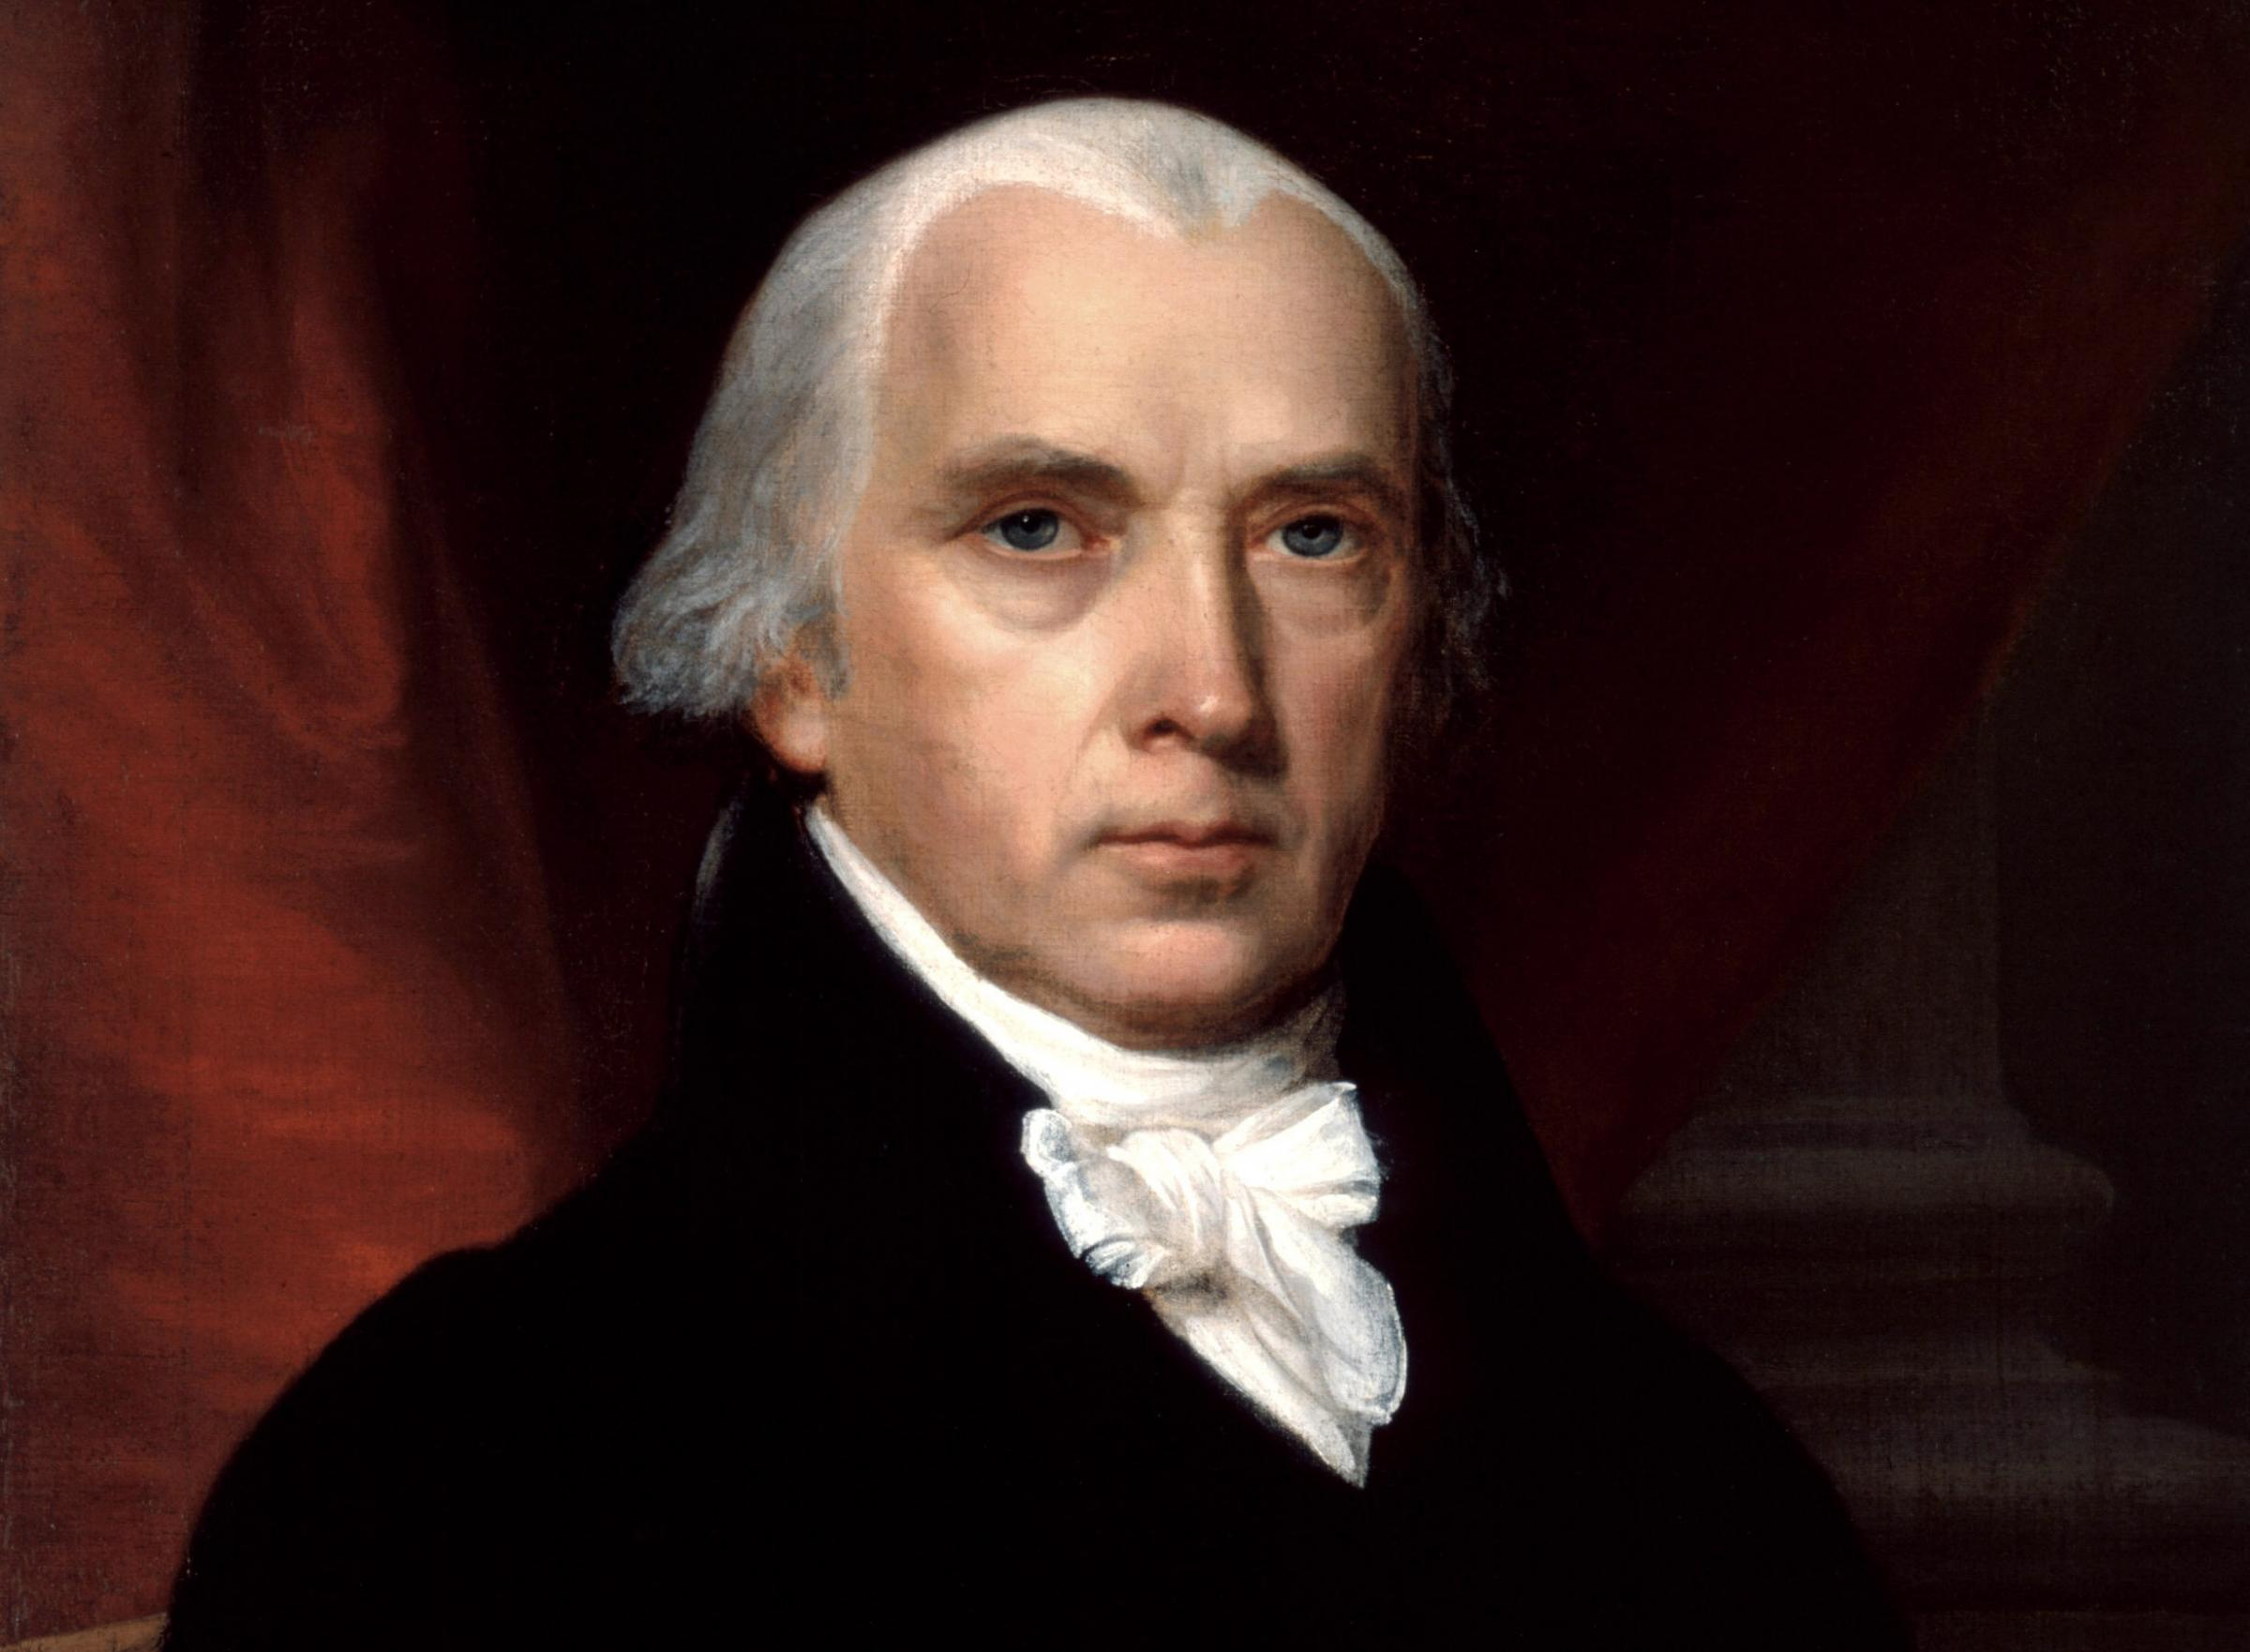 Former US president James Madison spoke about the need for the electorate to arm themselves with knowledge